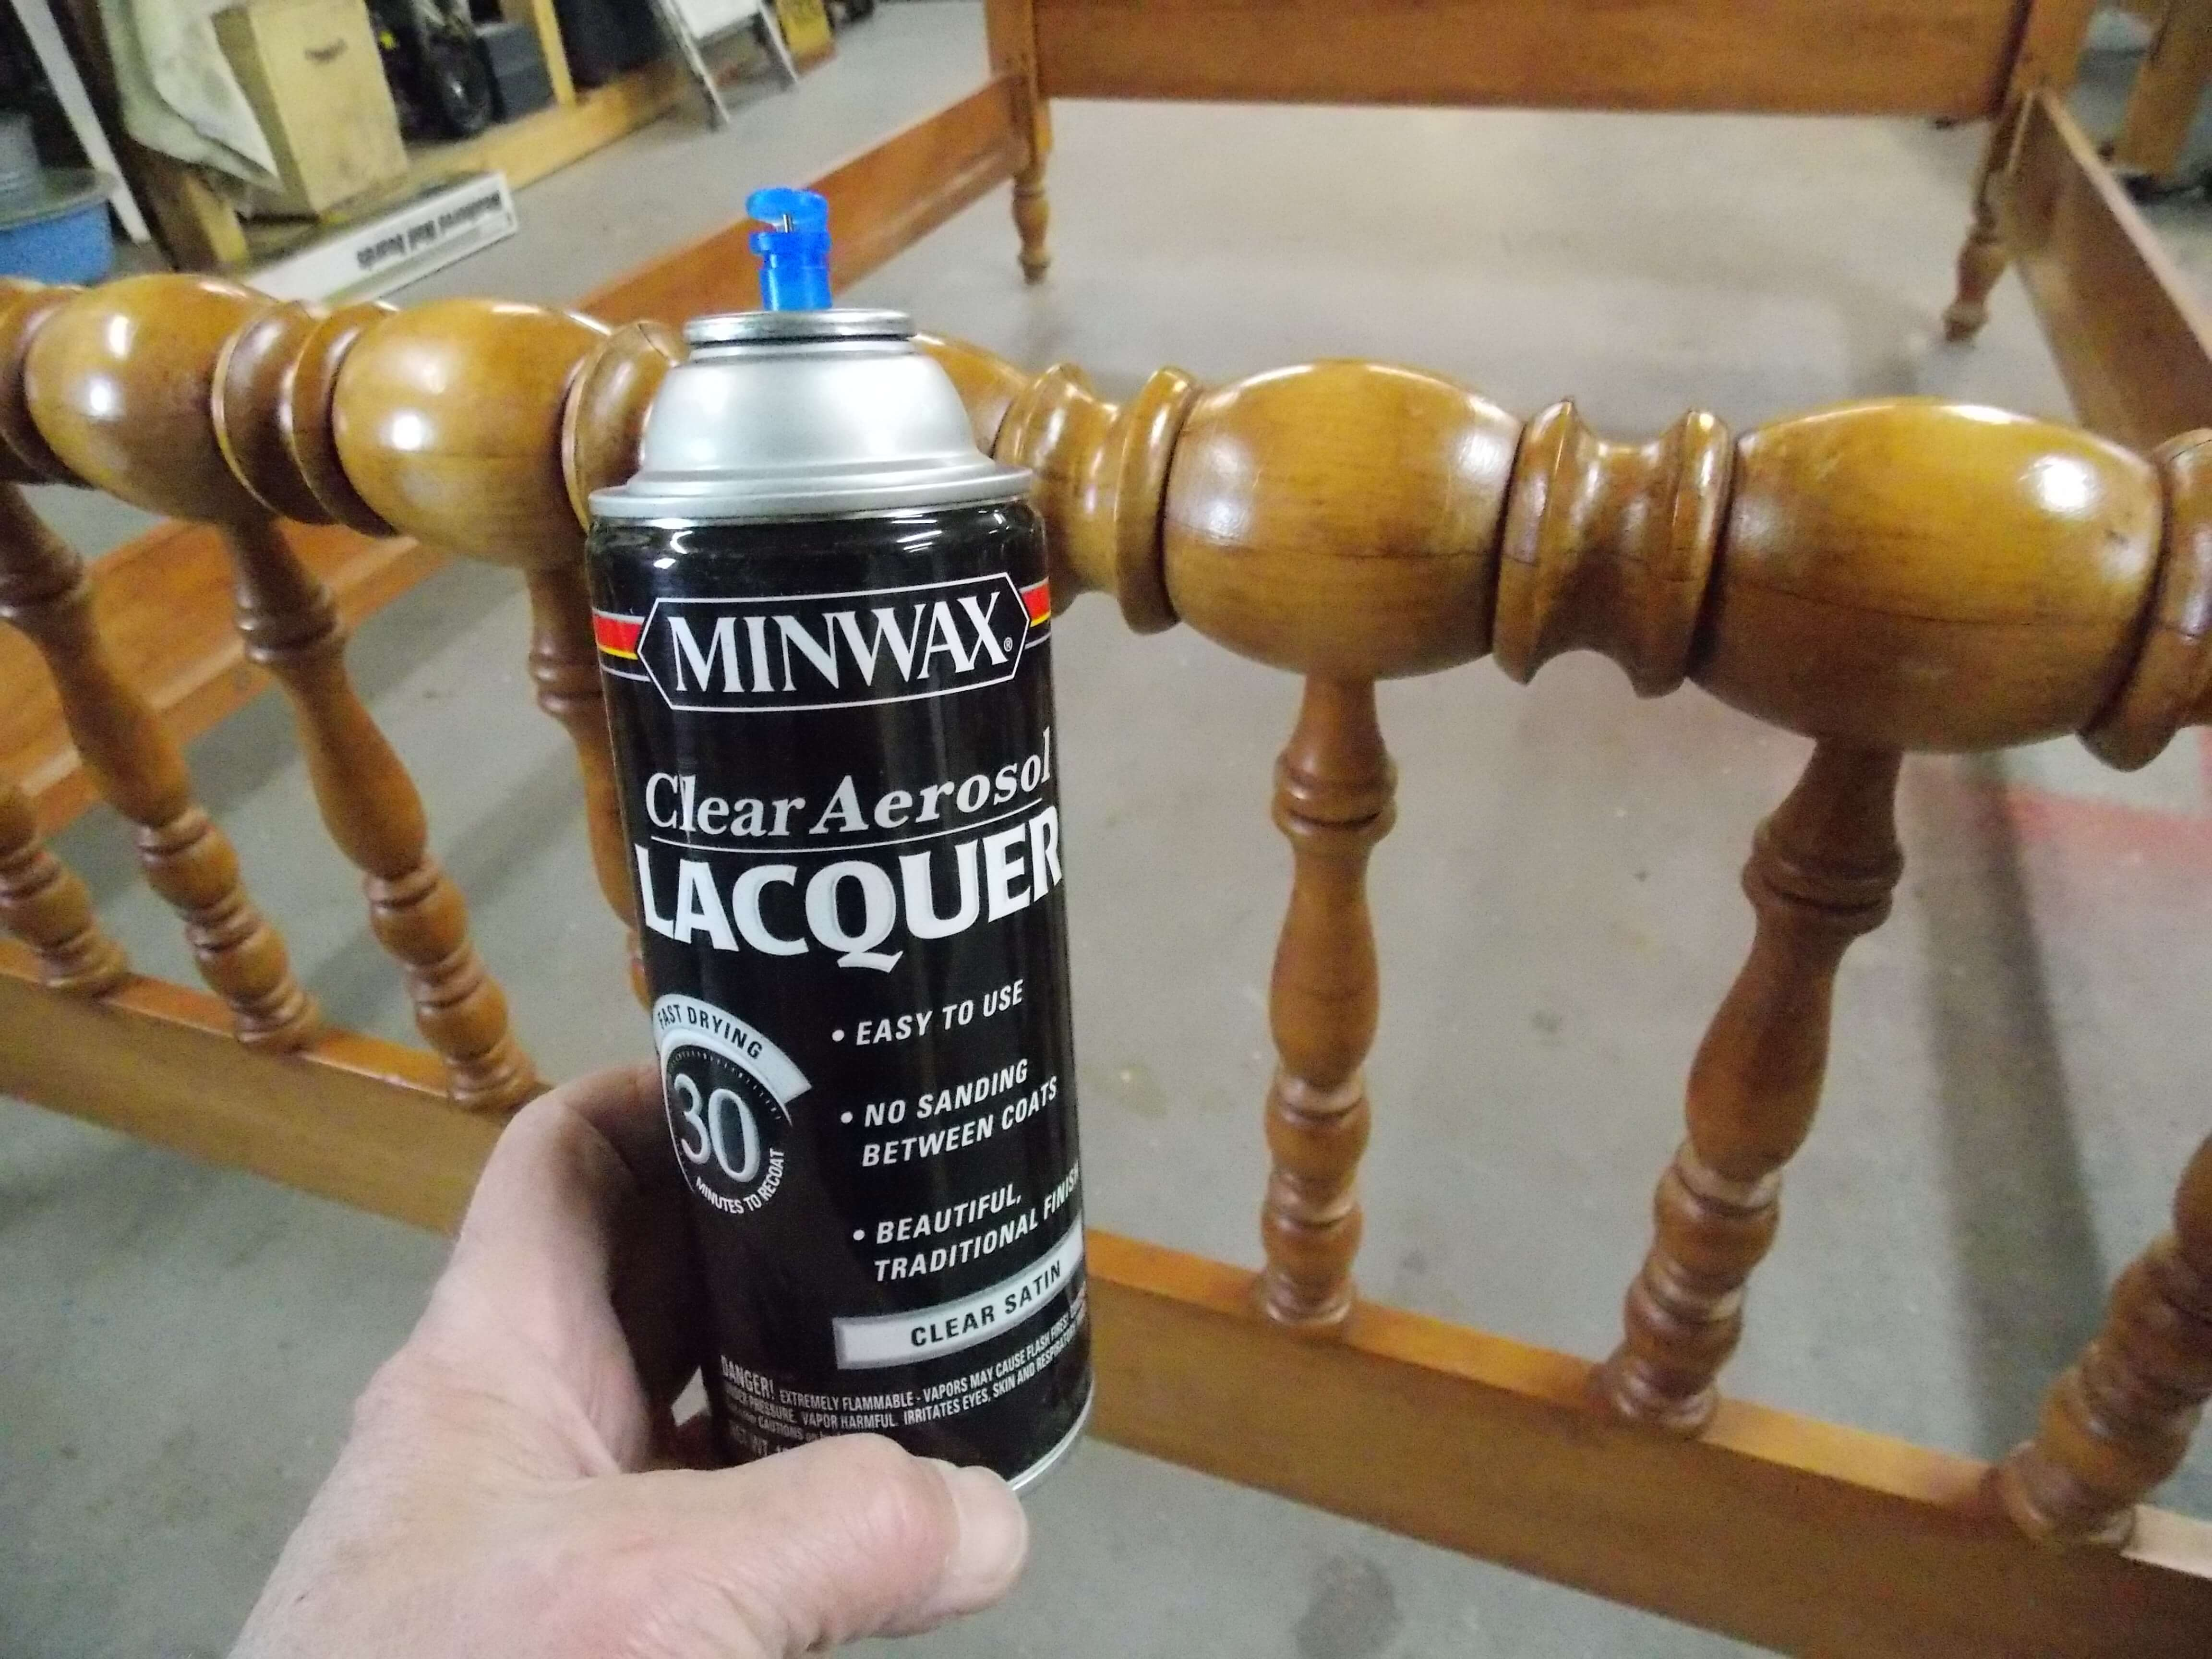 Using Minwax Clear Aerosol Lacquer for easy finish application